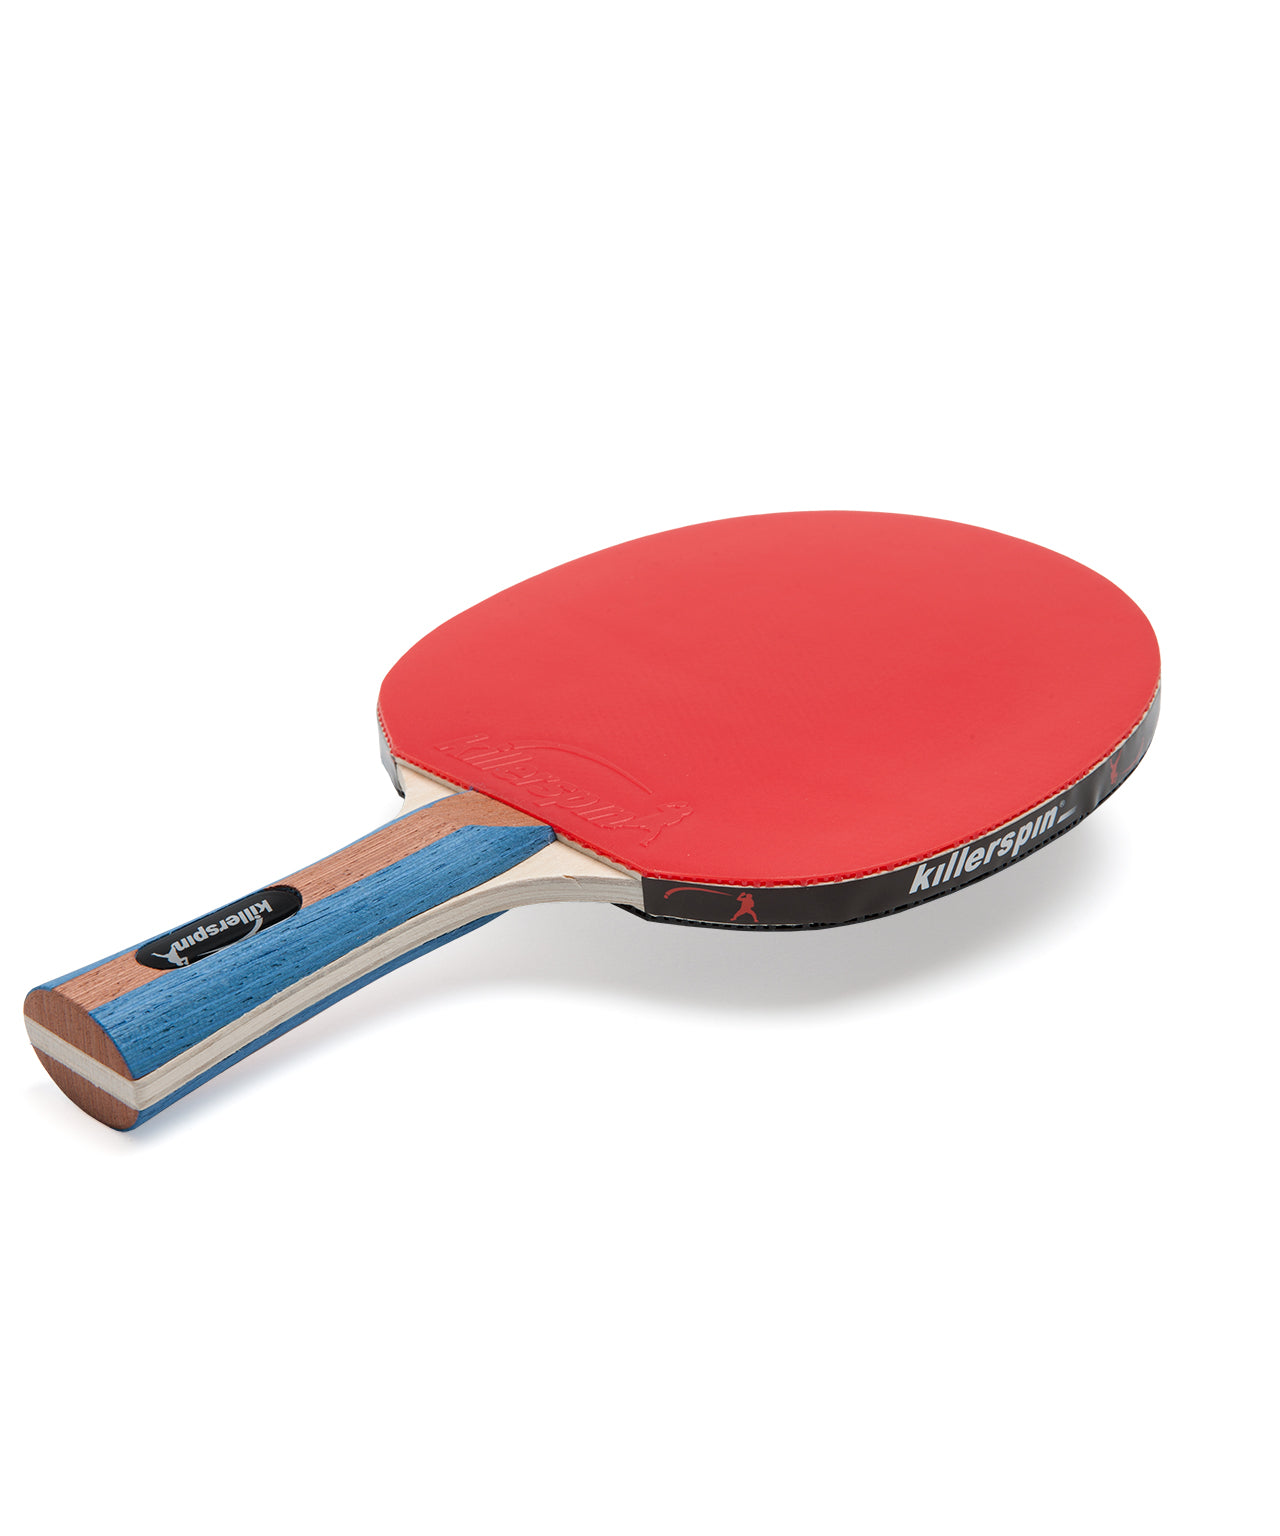 Killerspin Ping Pong Paddle Set JetSet2 - Red Rubber